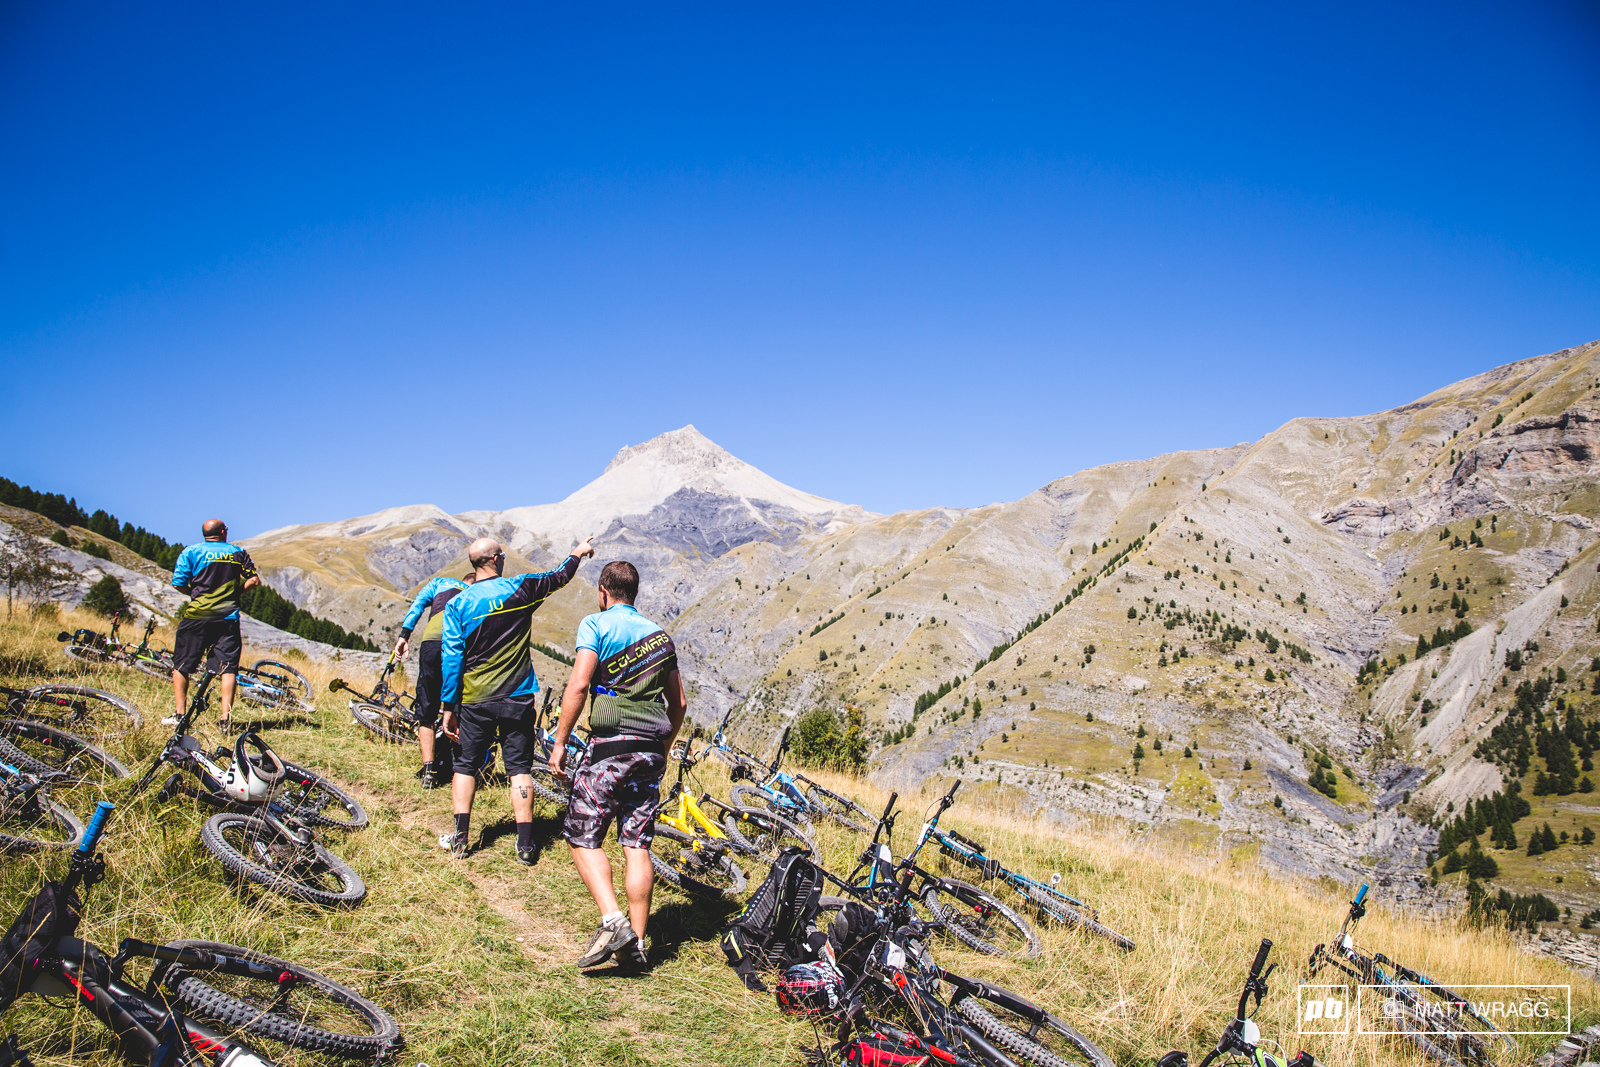 After a food stop in the hamlet it was time for the push to the top. While there was plenty of suffering to be had the view helped take your mind off it.